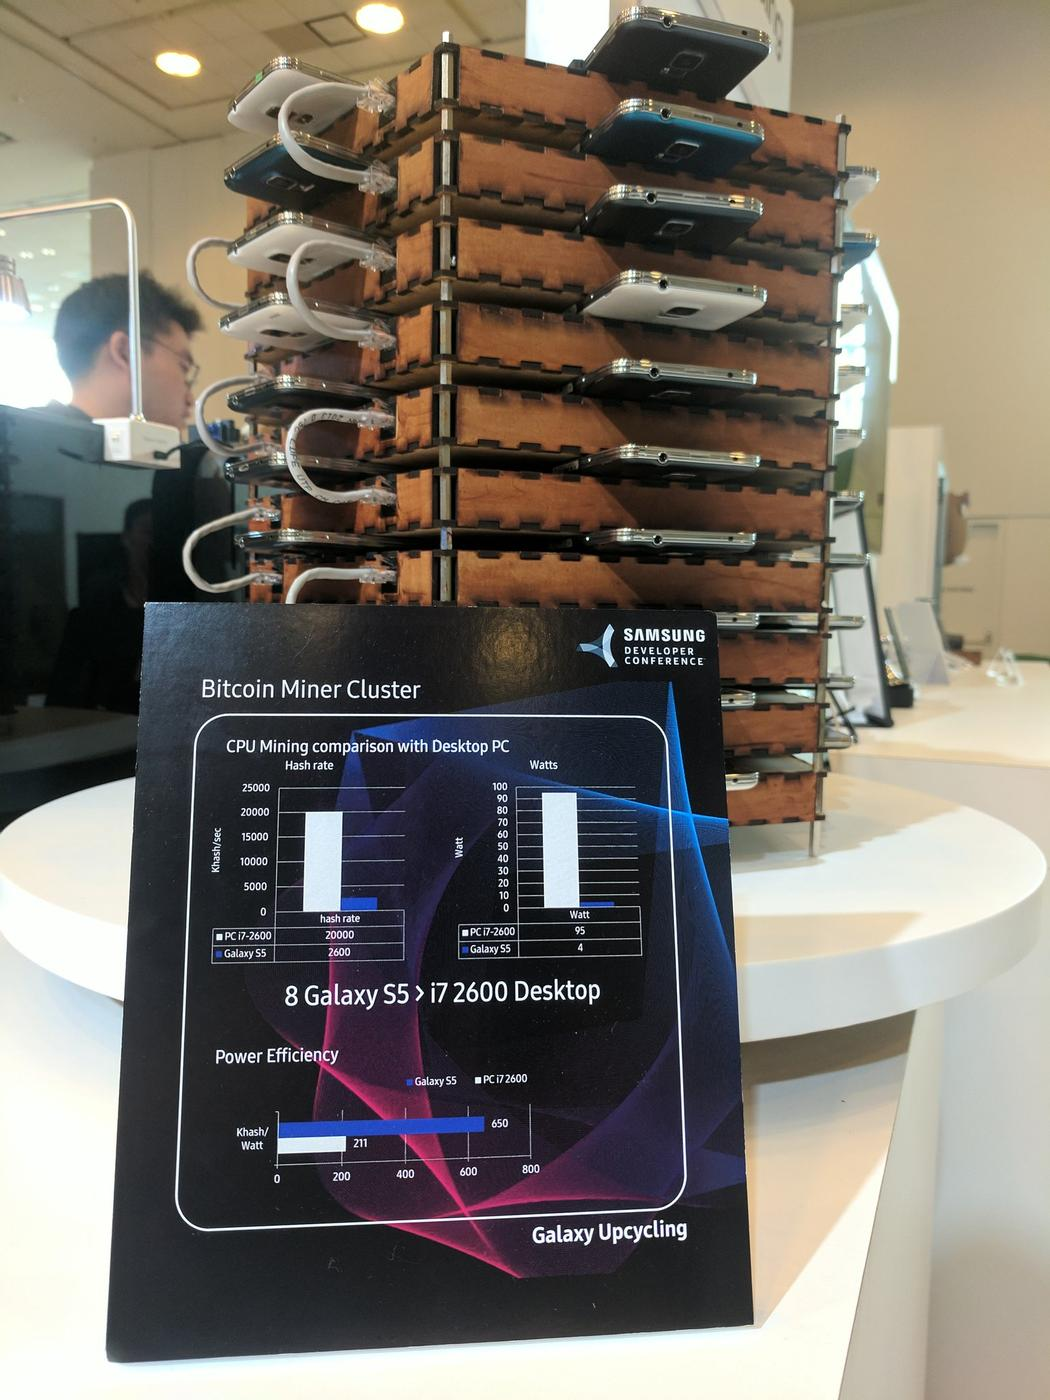 samsung-galaxy-s5-bitcoin-miner-cluster